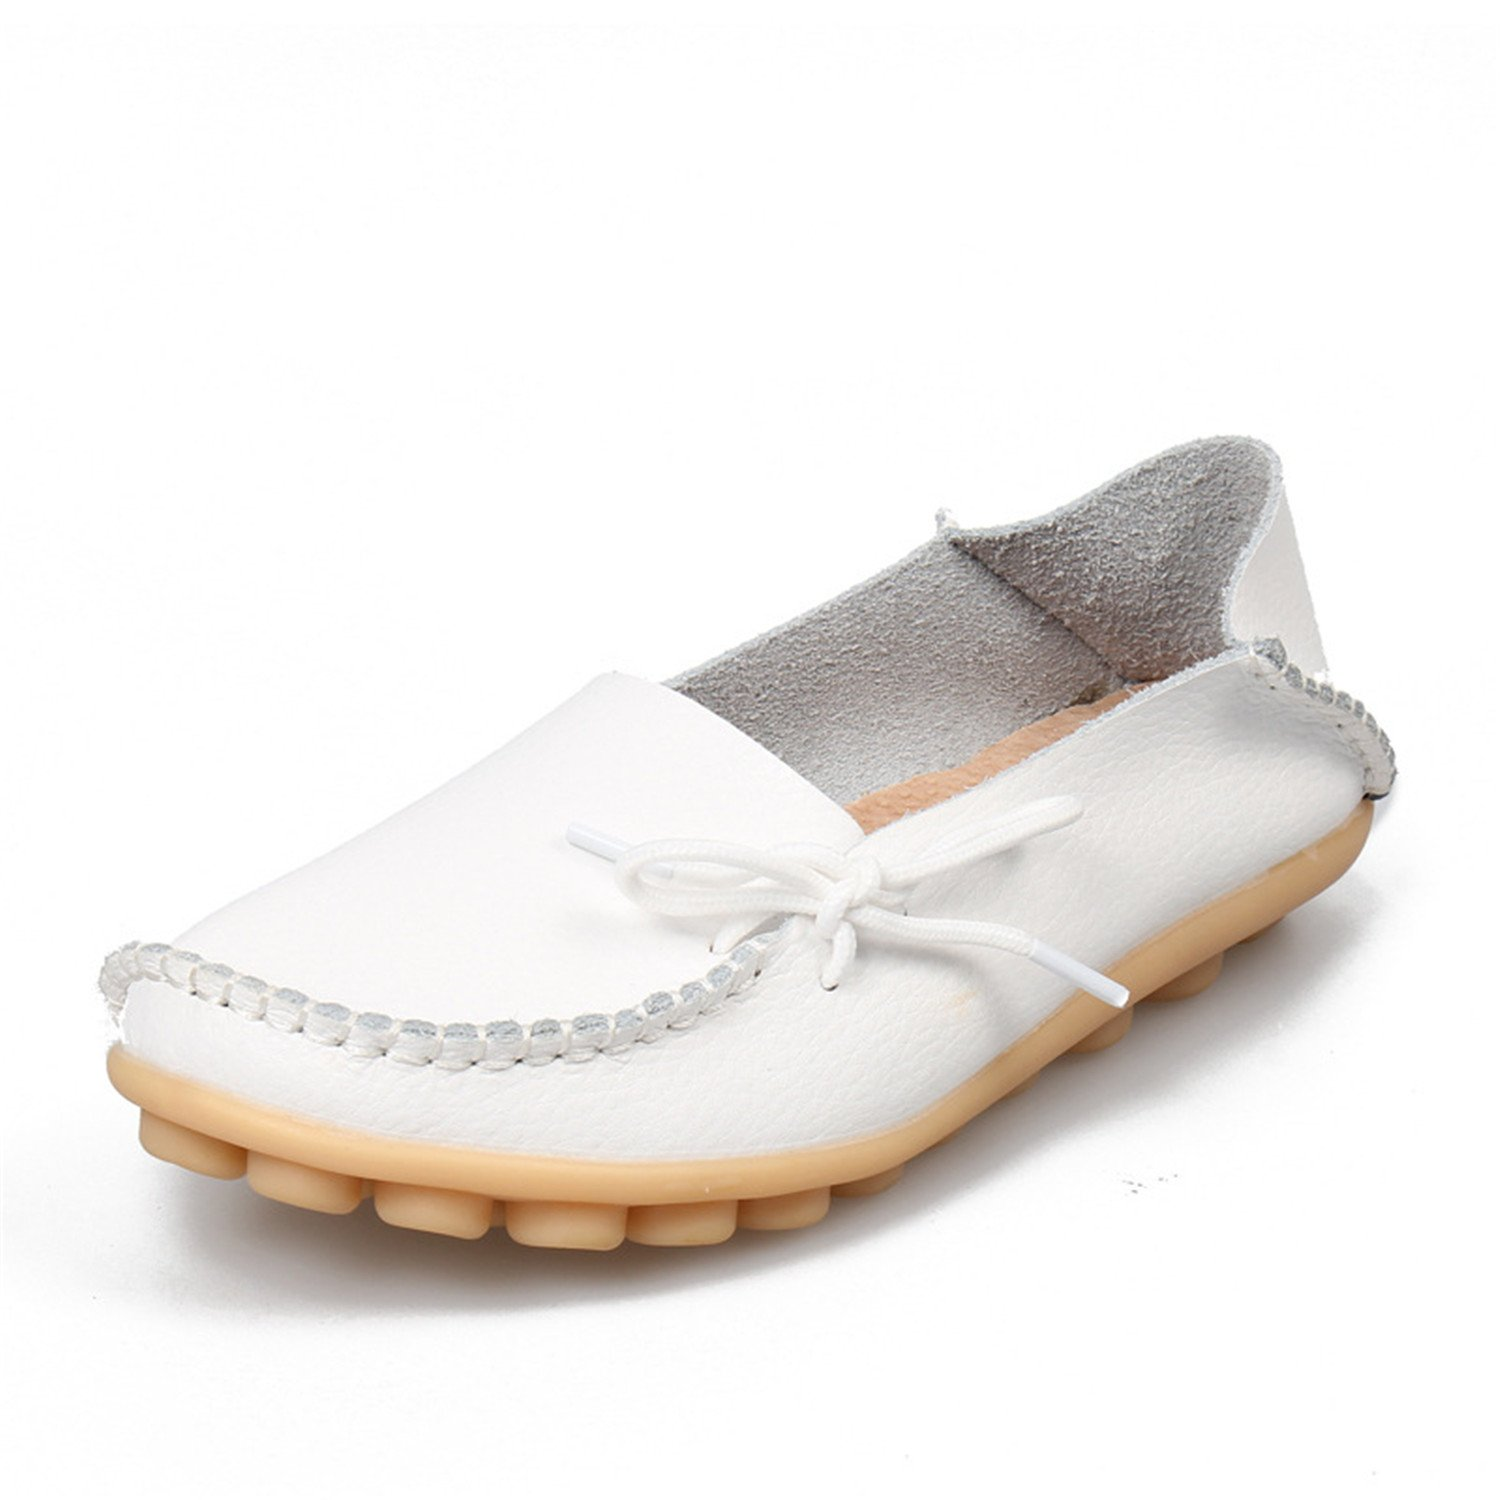 Wanyesta Women Leather Moccasins Mother Loafers Flats Driving Ballet Shoes